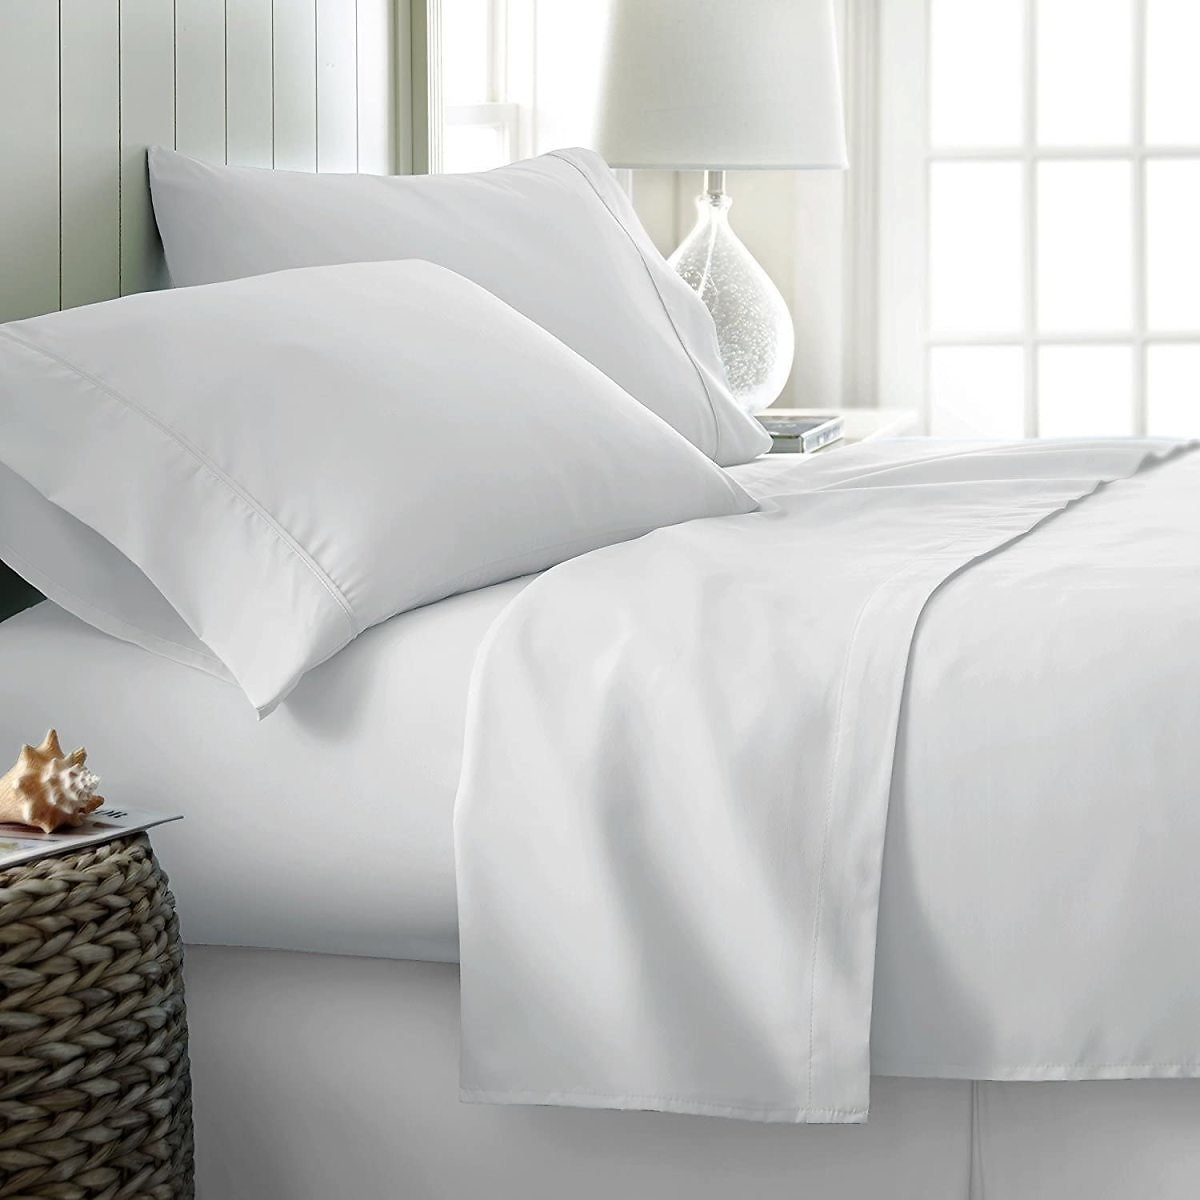 1000 Thread Staple Egyptian Pure Cotton Pillow Cases, Set of 2 Queen